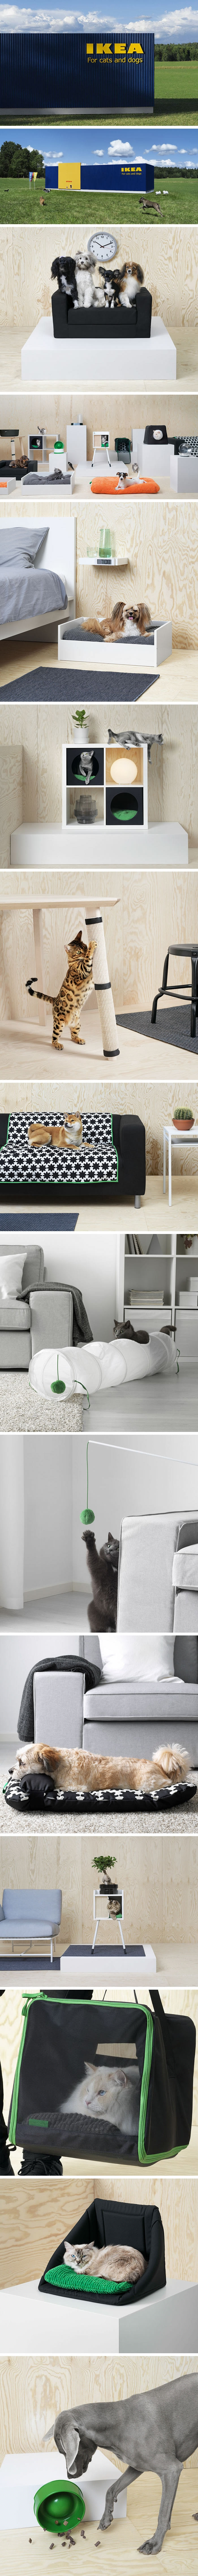 Ikea pet furniture collection just 'purrfect' for animal lovers